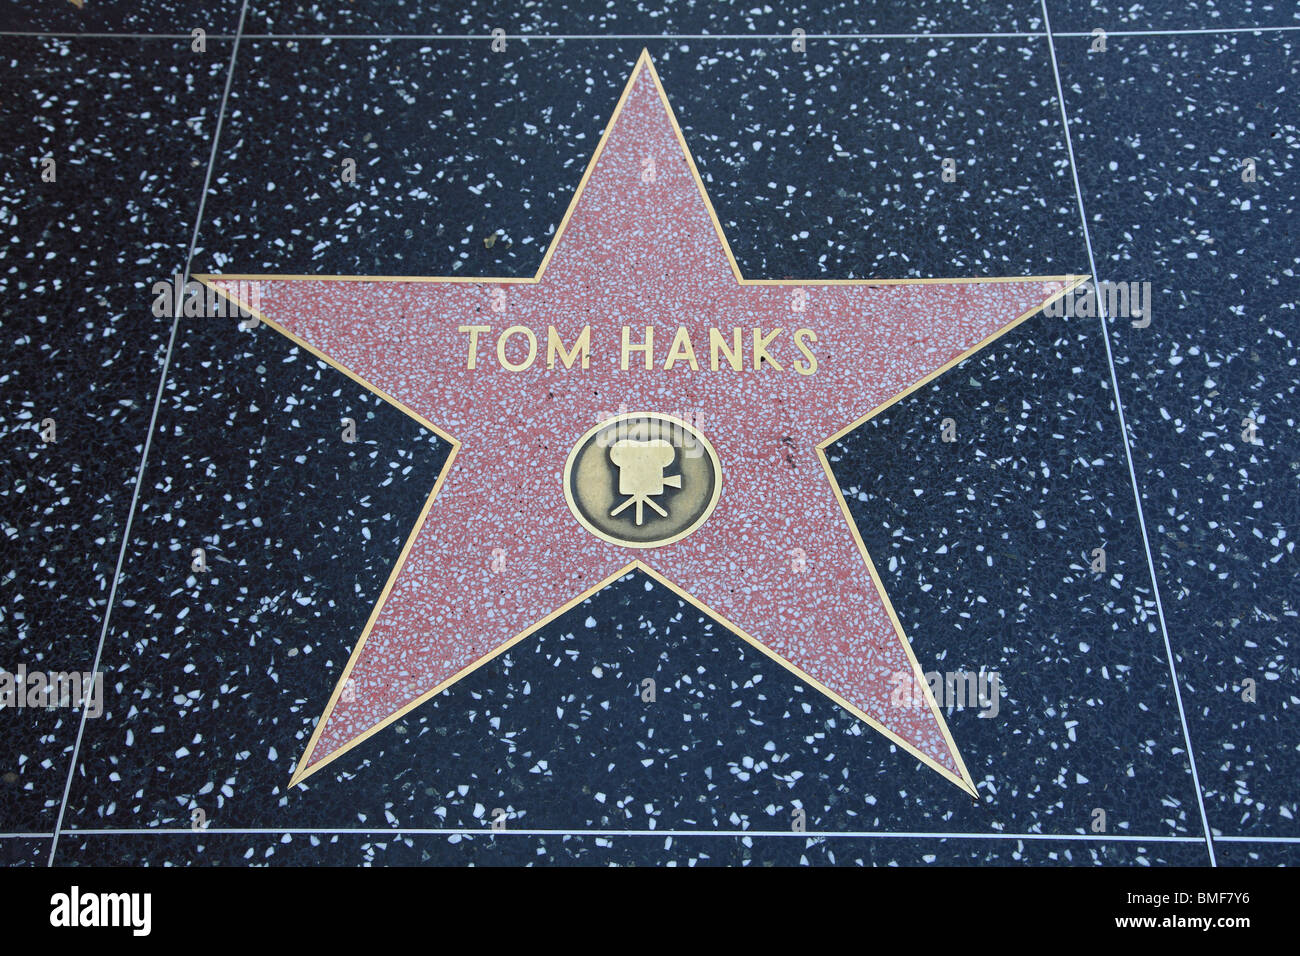 Tom Hanks Star, Hollywood Walk of Fame, Hollywood Boulevard, Los Angeles, California, USA - Stock Image